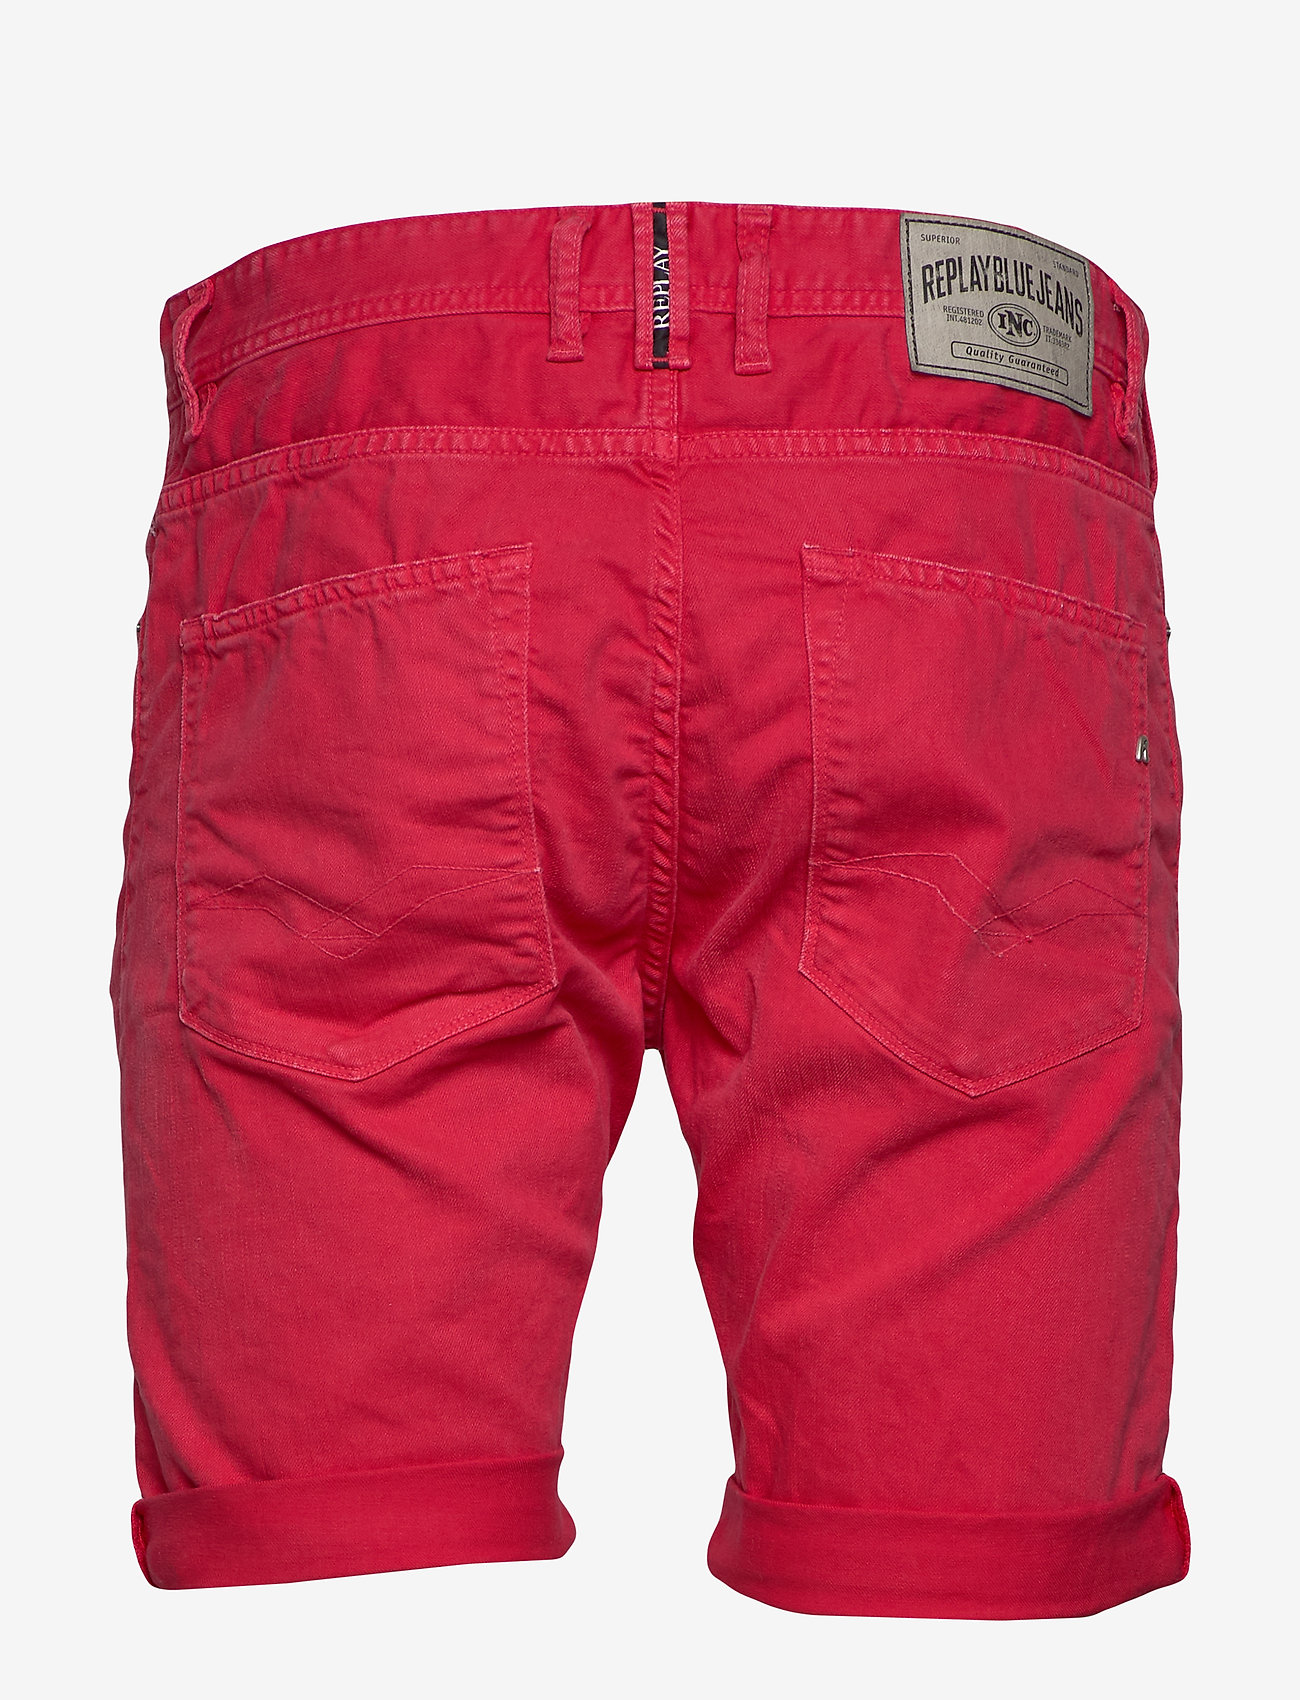 Replay - RBJ.901 SHORT - denim shorts - deep red - 1